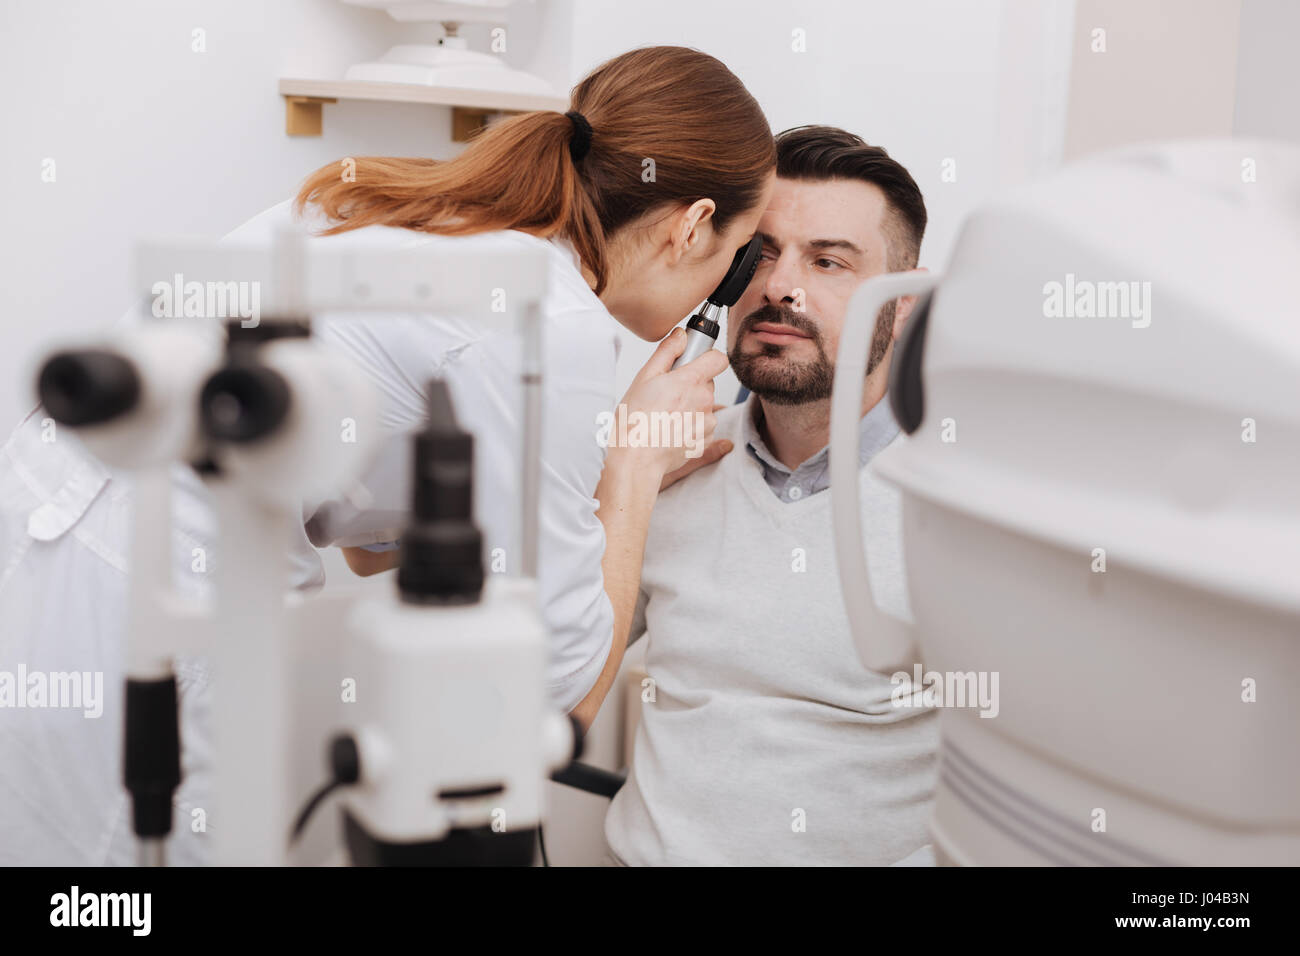 Professional experienced optometrist using an ophthalmoscope - Stock Image